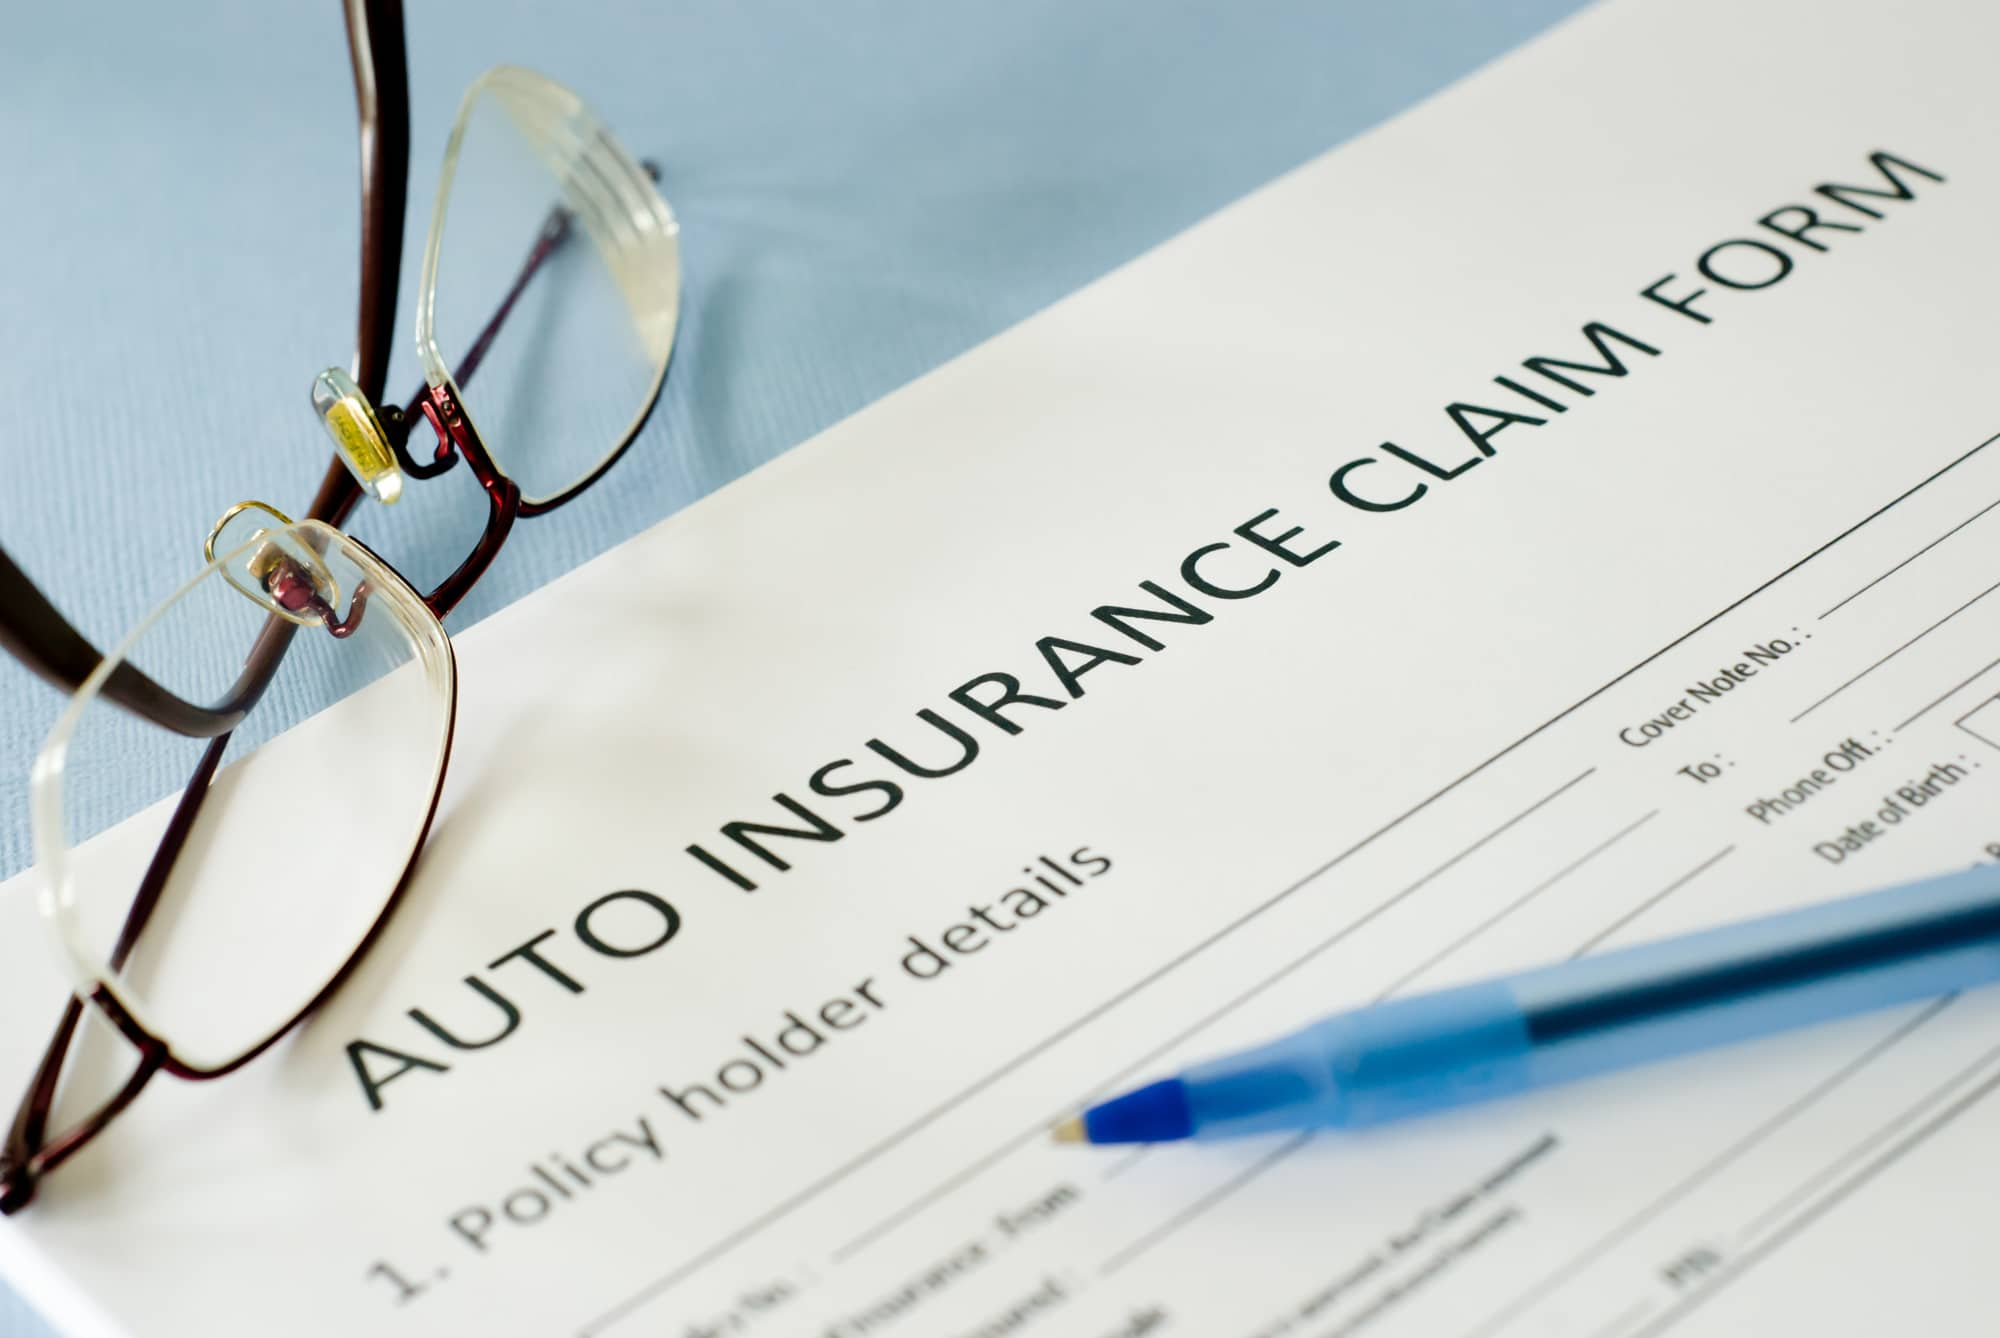 Auto Insurance Claims: A Complete Step-By-Step Guide